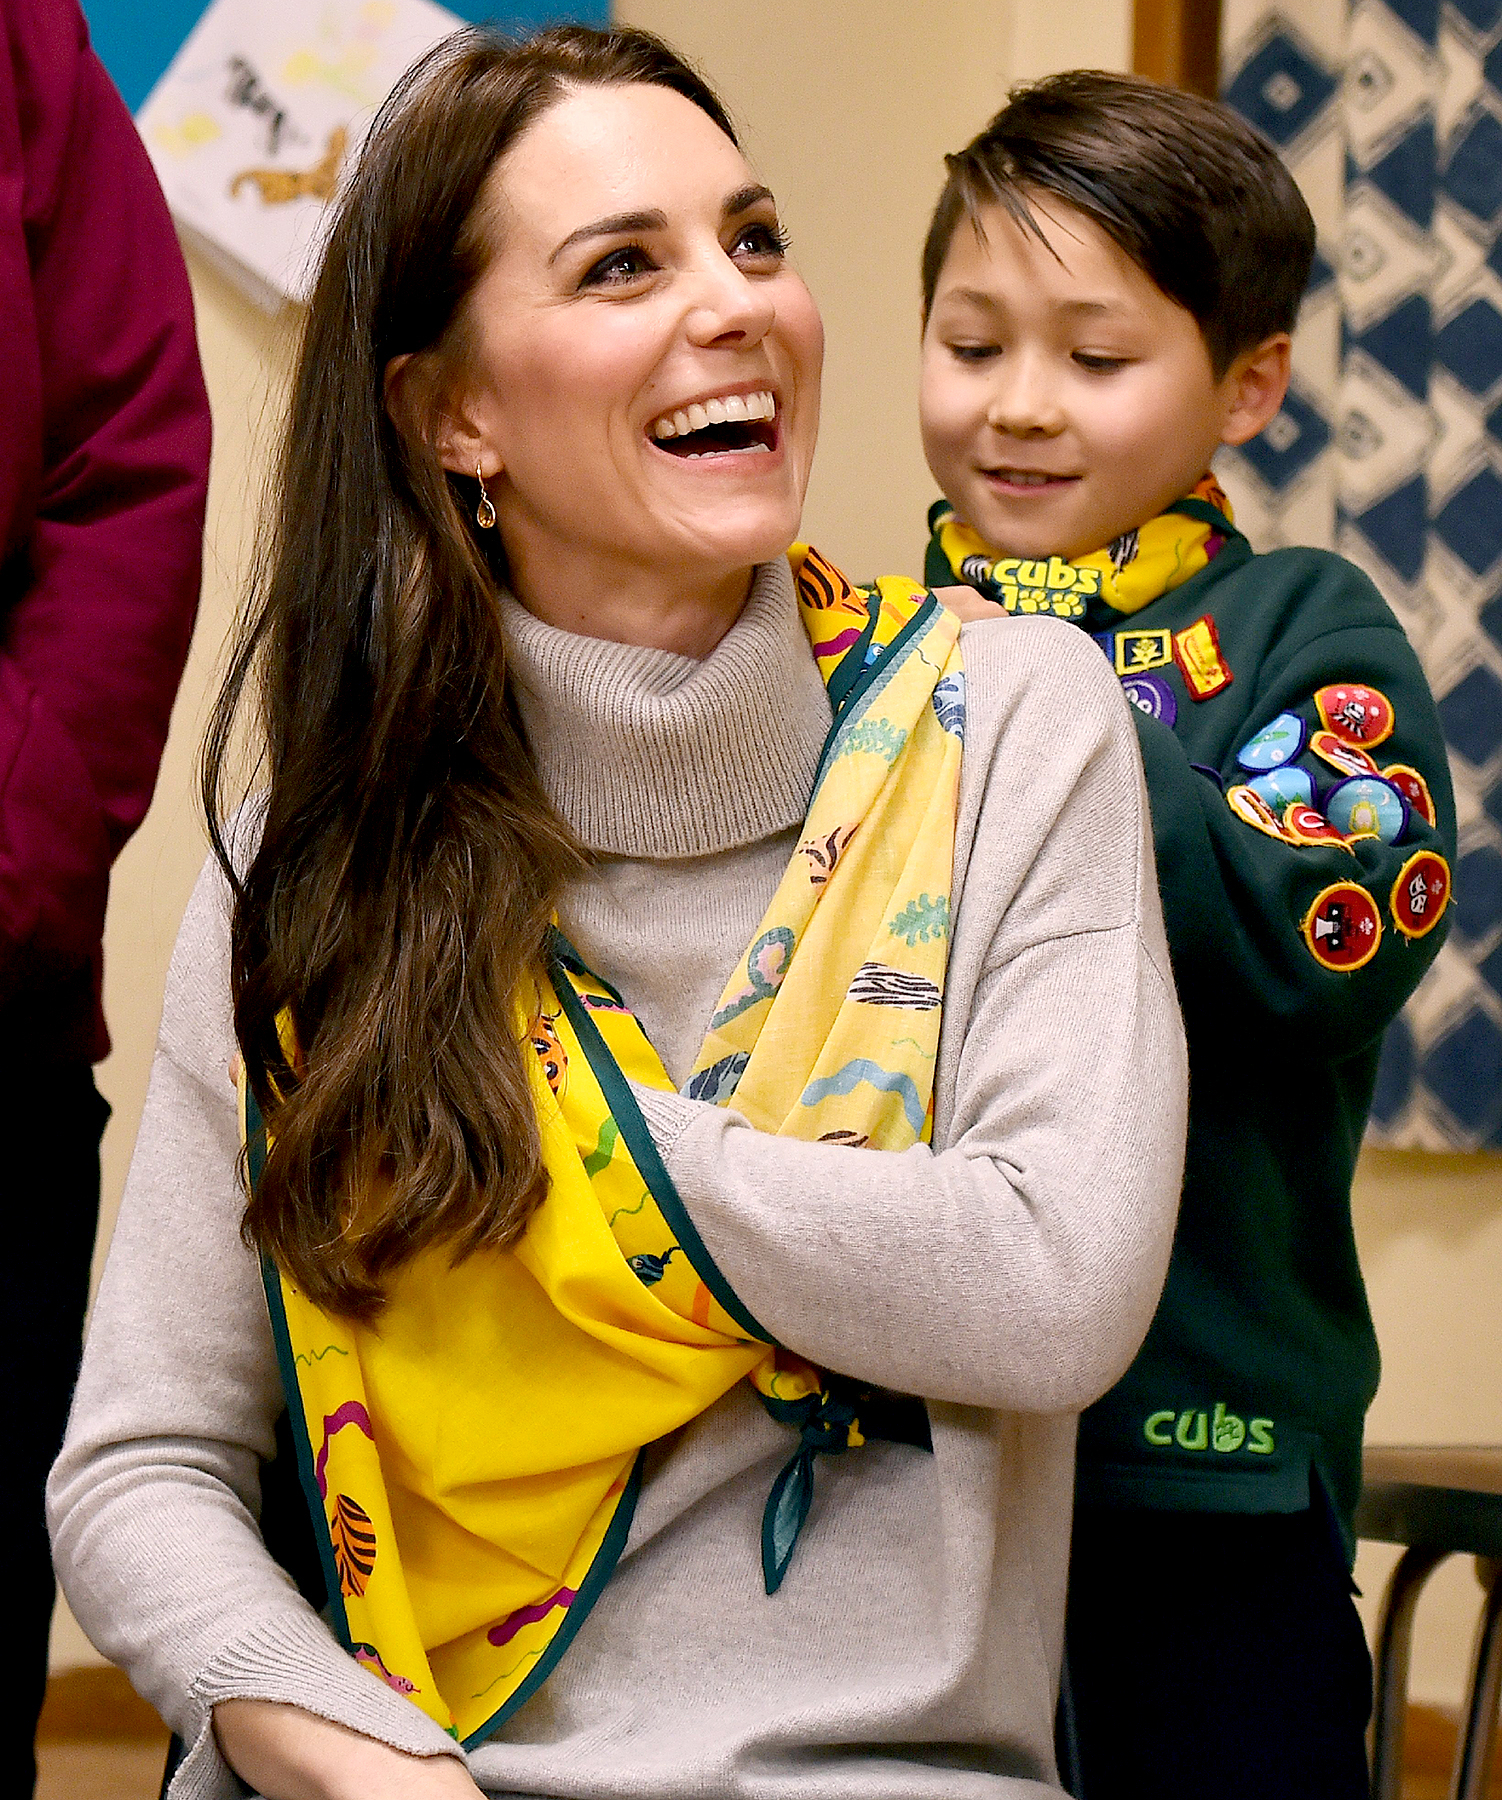 A cub scout uses a neckerchief to show Britain's Catherine, Duchess of Cambridge, how to support a broken arm, during a Cub Scout Pack meeting with cubs from the Kings Lynn District, in Kings Lynn, eastern England, on December 14, 2016, to celebrate 100 years of Cubs. The Duchess attended a special Cub Scout Pack meeting with Cubs from the Kings Lynn District to celebrate 100 years of Cubs. Cub Scouting was co-founded by Robert Baden-Powell and Vera Barclay on the 16th December 1916.